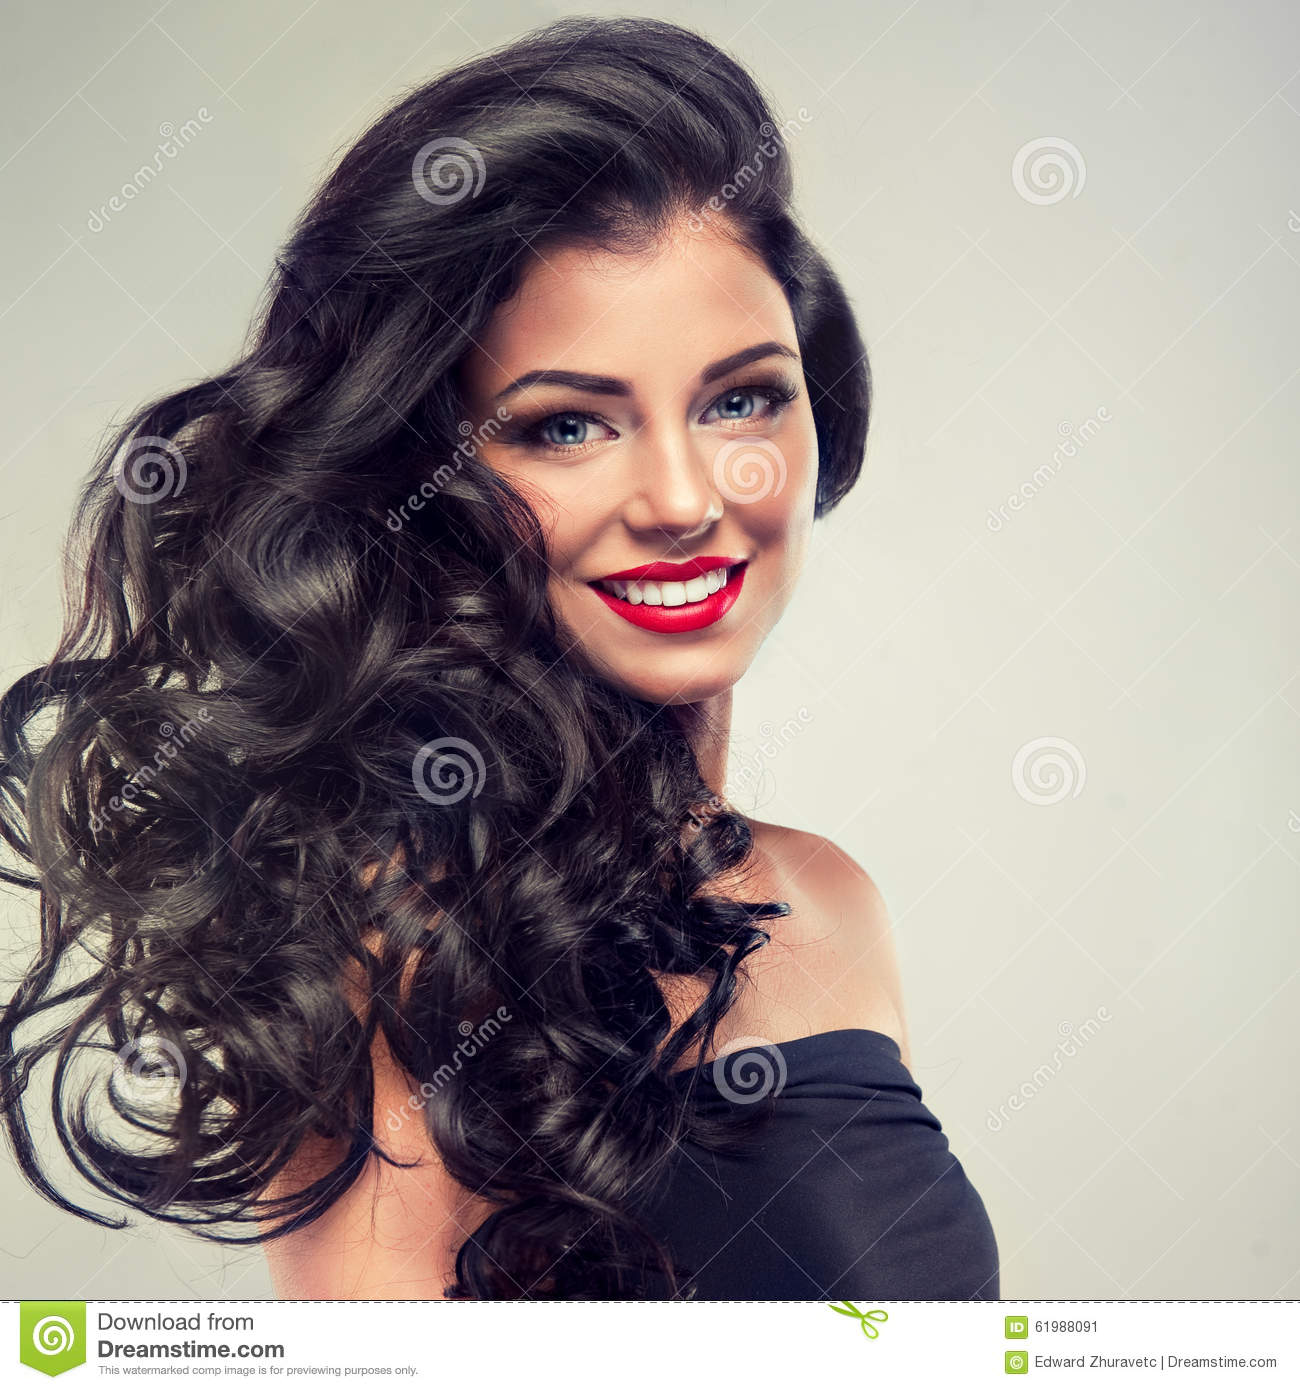 Brunette with long,dense curly hair.